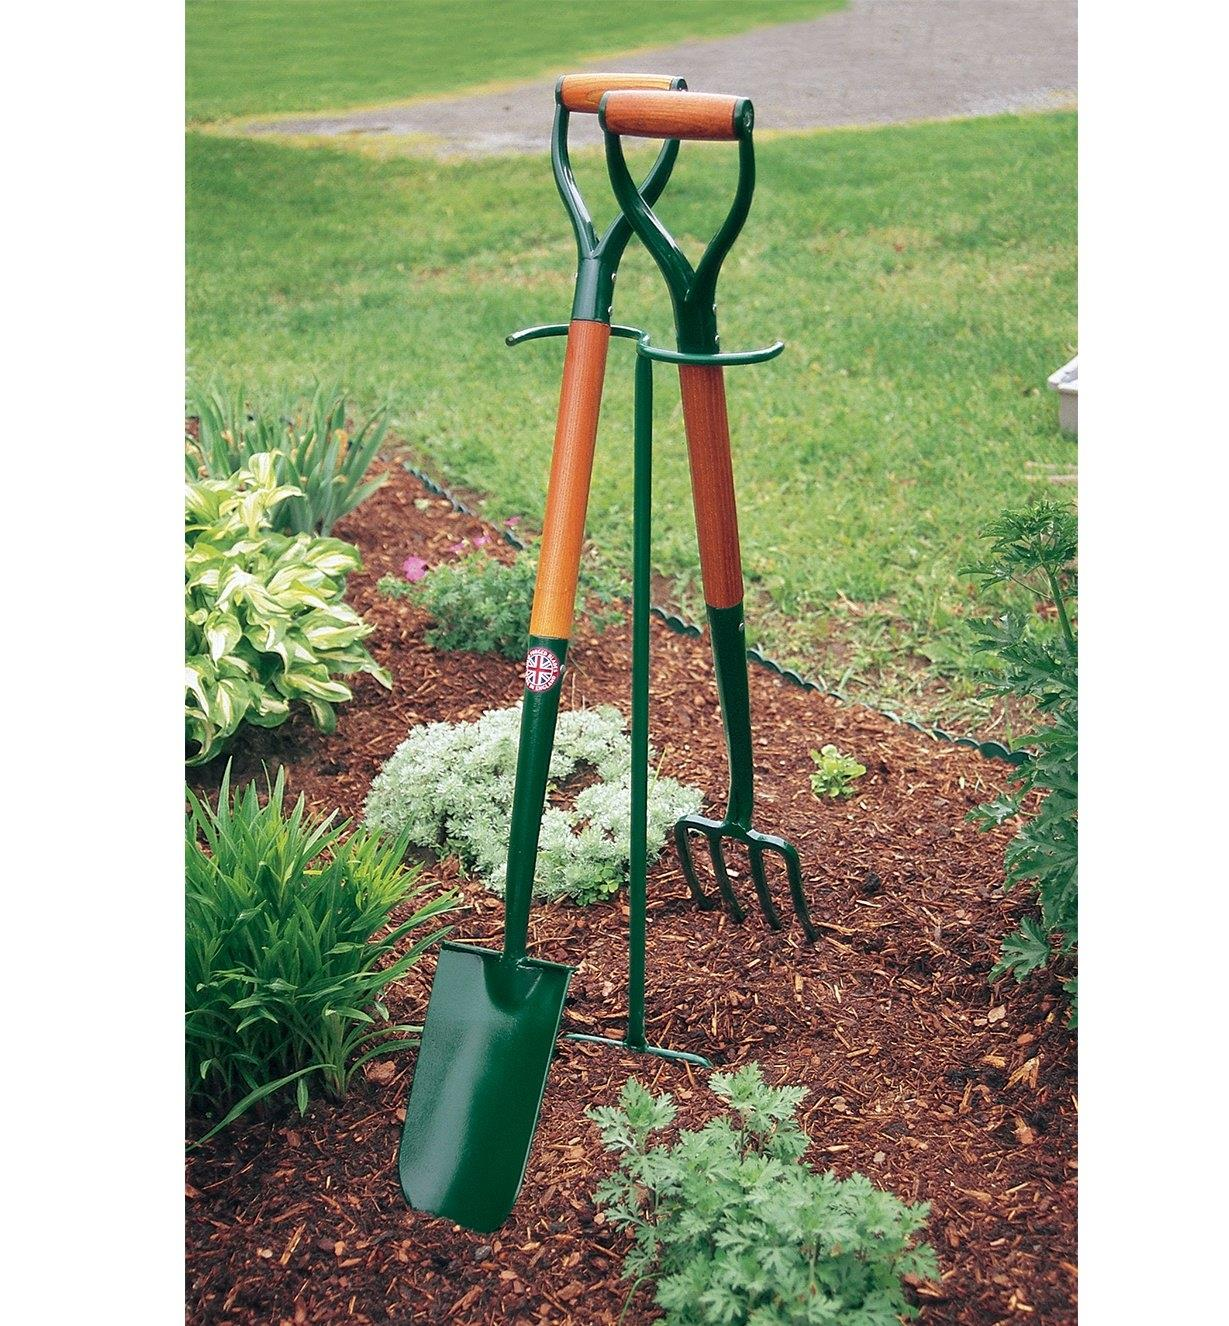 Macgregor Tool Butler supporting a shovel and fork in a garden